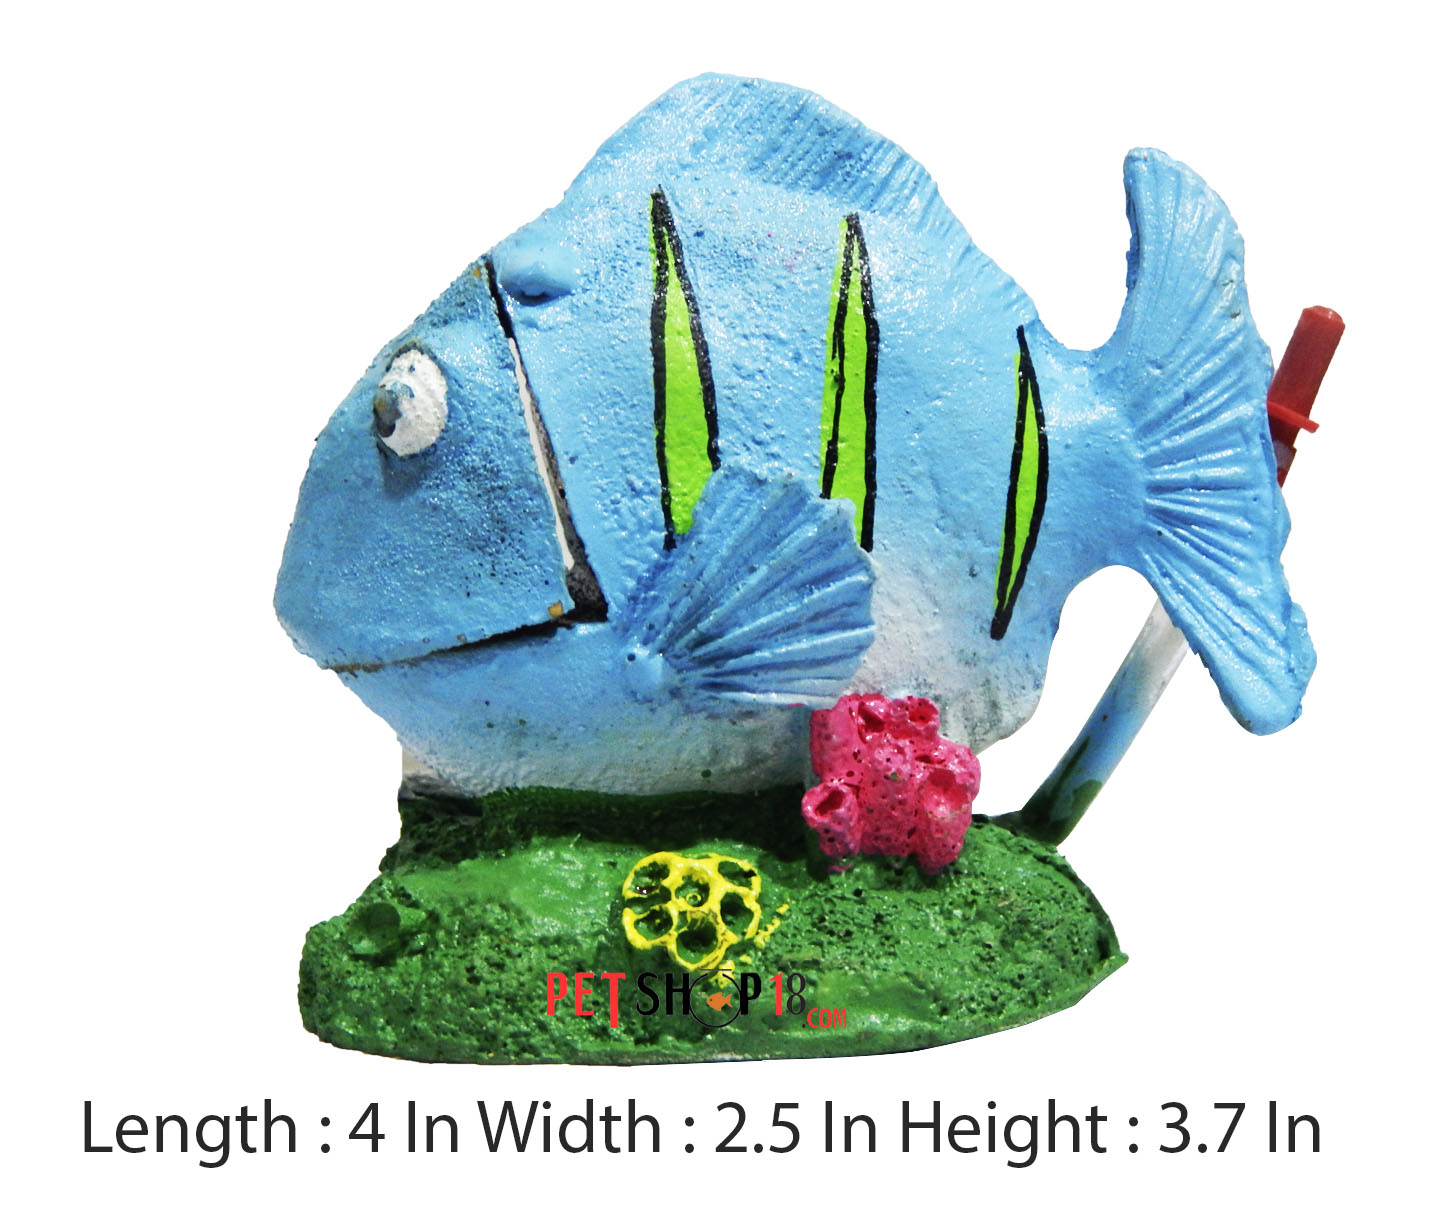 Fish aquarium online delhi - Blue Fish Aquarium Decor Small